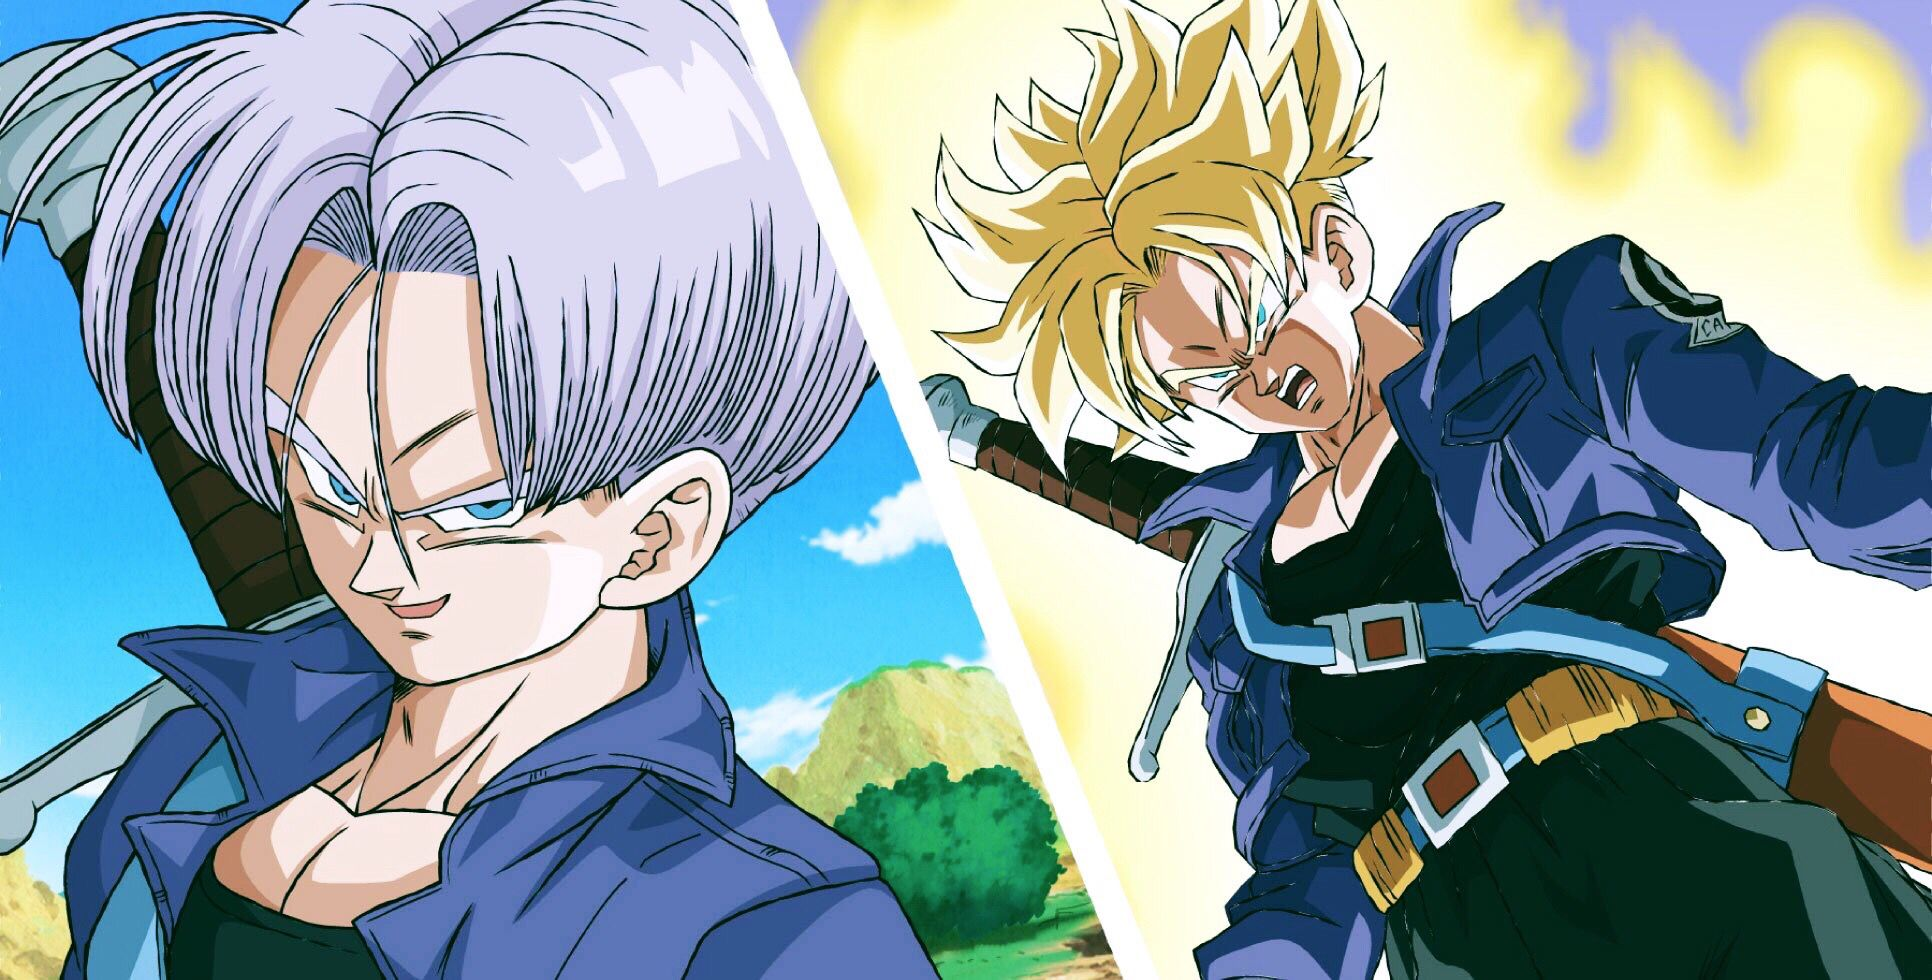 Mirai Trunks Dragon Ball Art Dragon Ball Super Dragon Ball Z